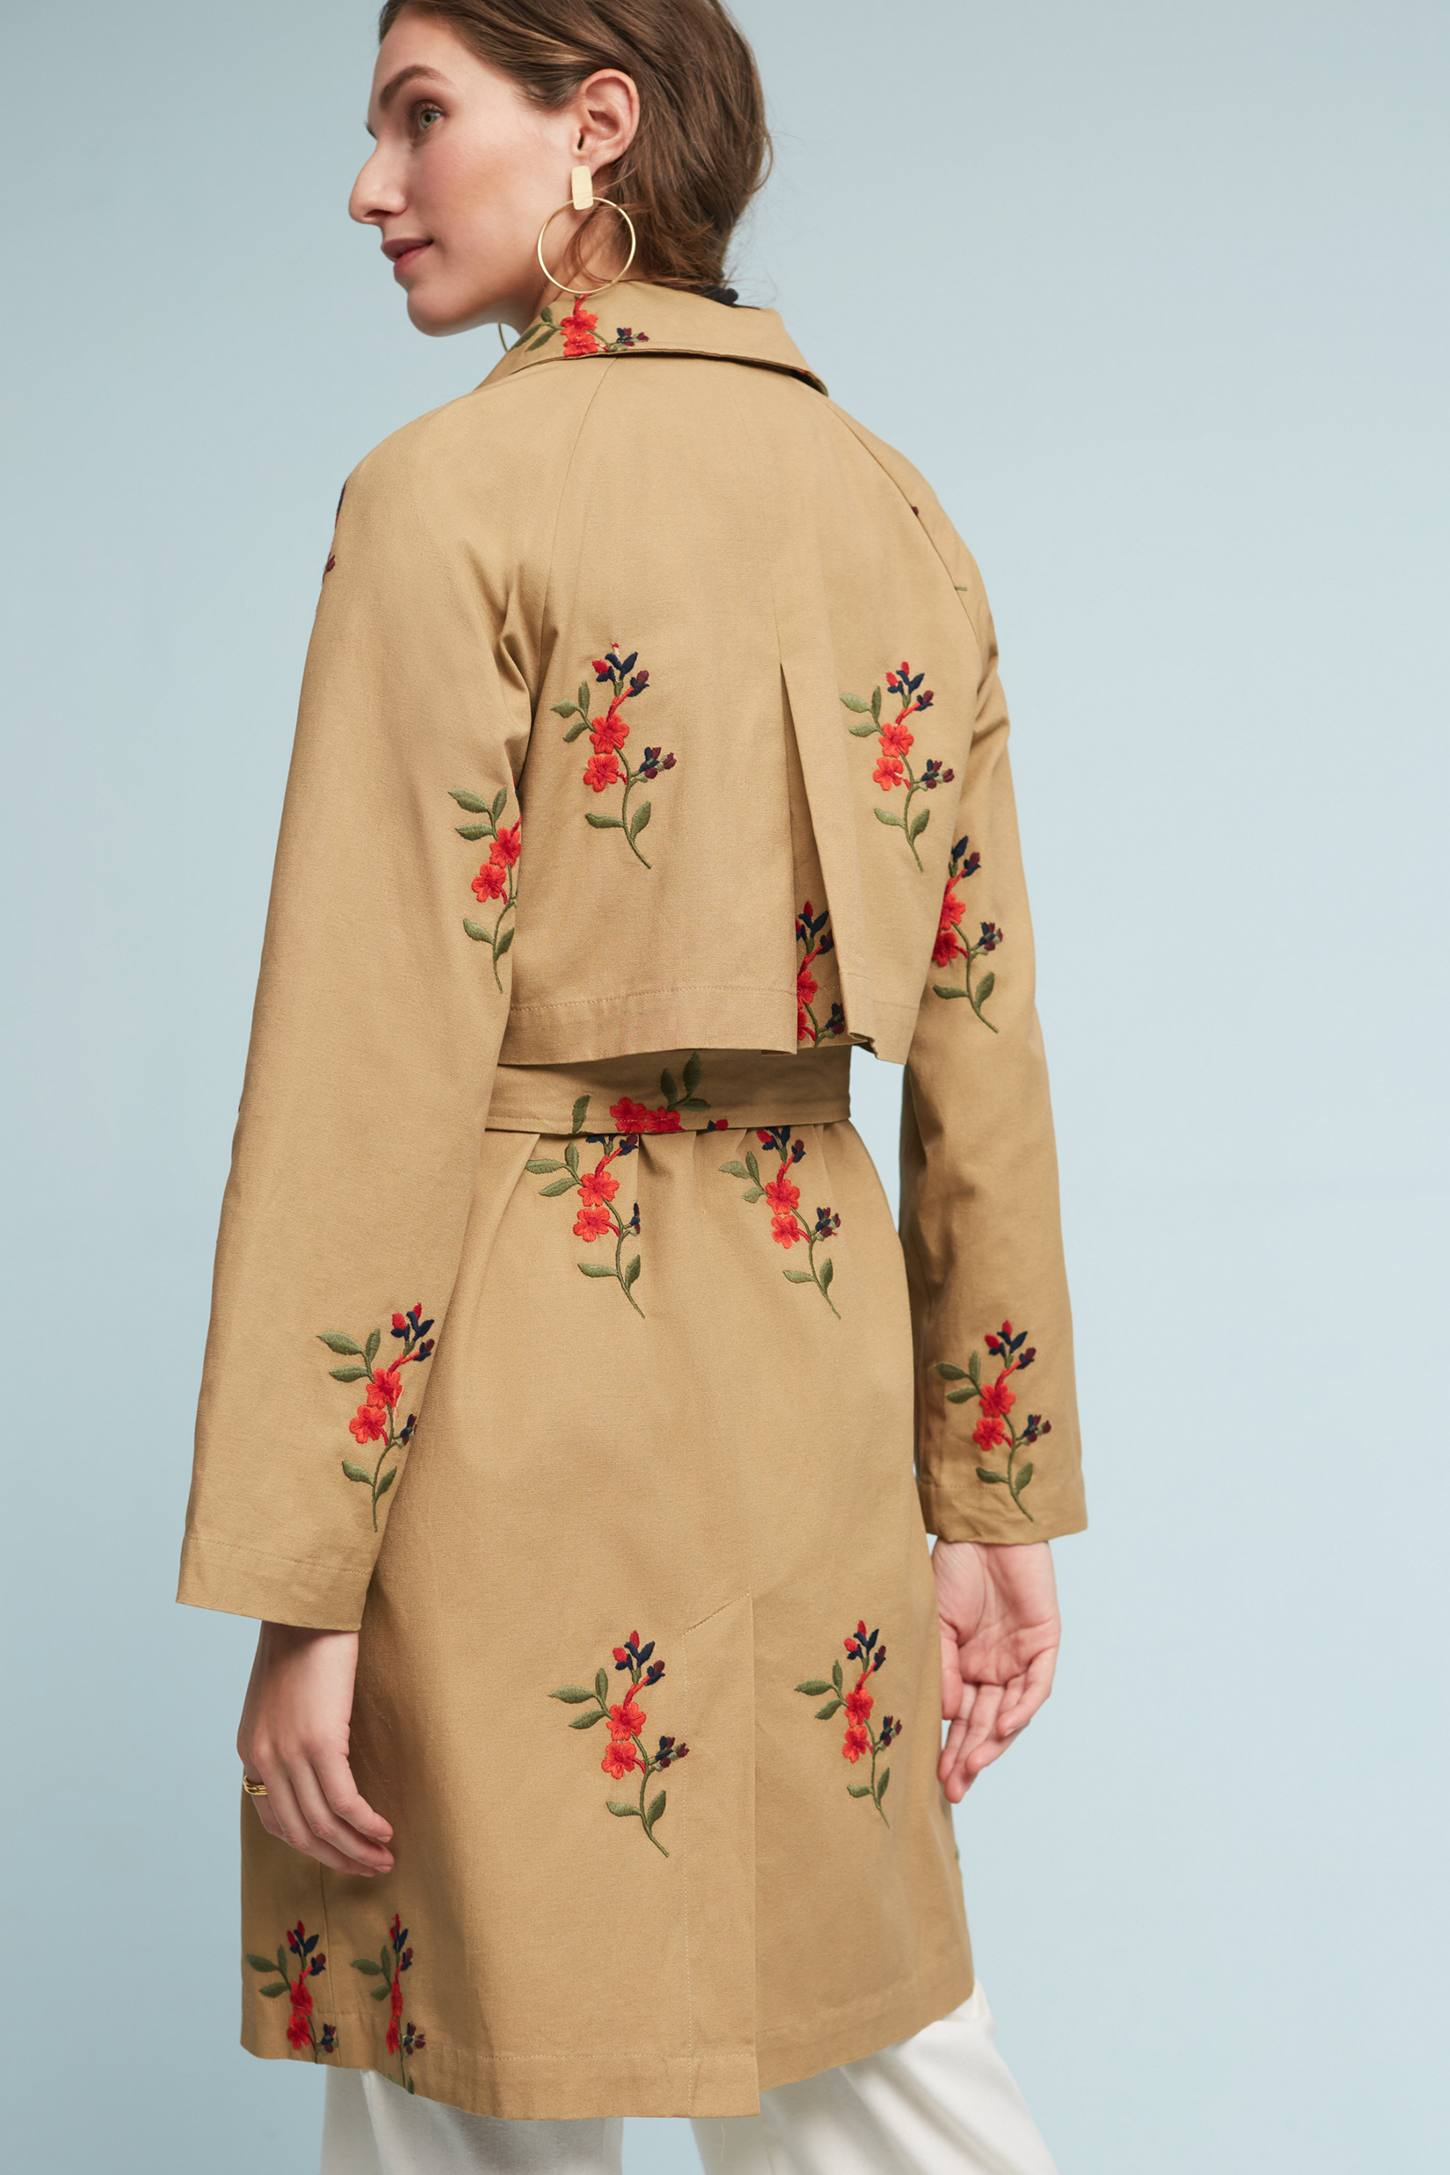 Slide View: 2: Embroidered Floral Trench